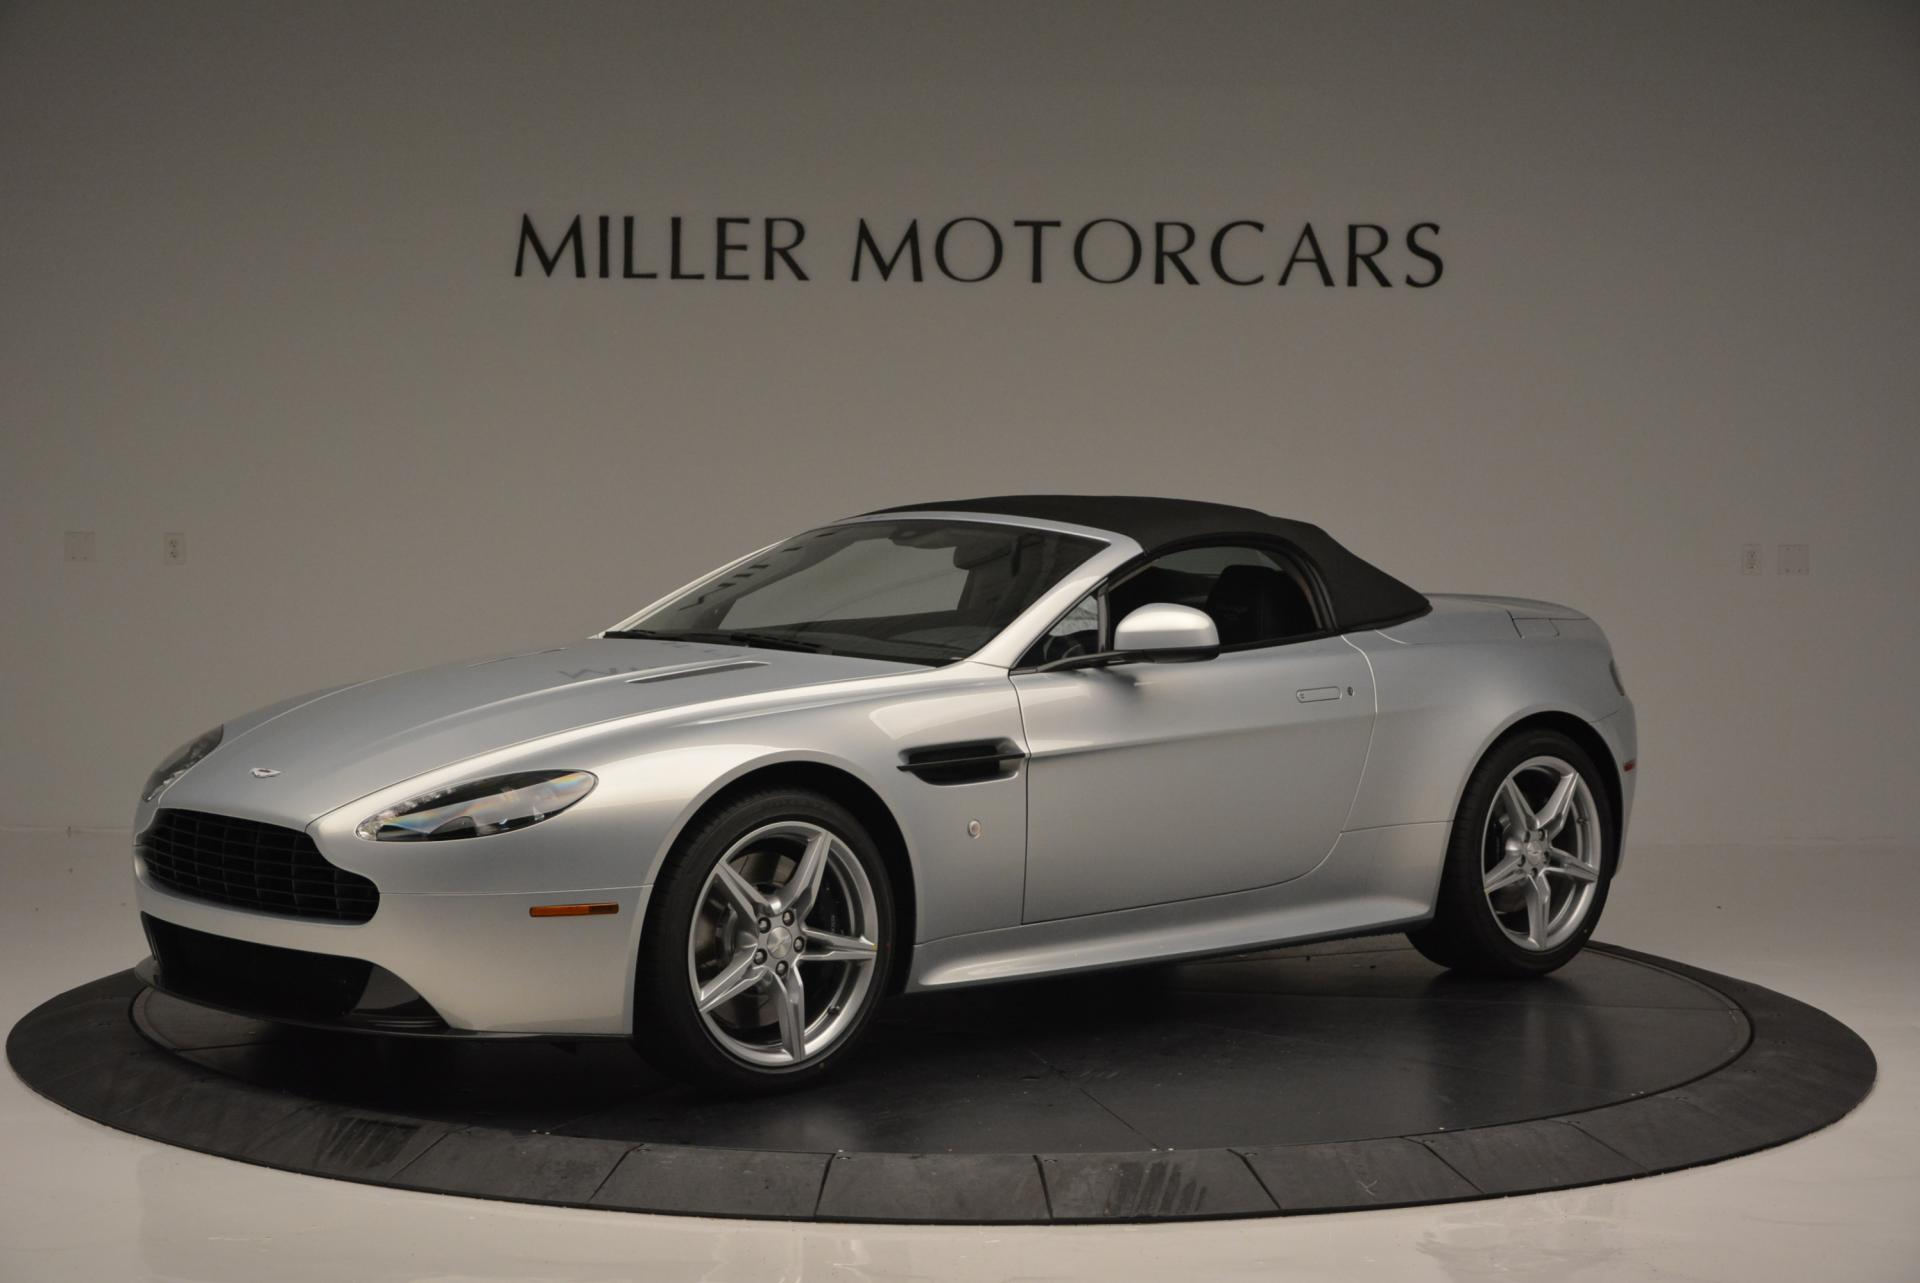 New 2016 Aston Martin V8 Vantage GTS Roadster For Sale In Westport, CT 90_p14